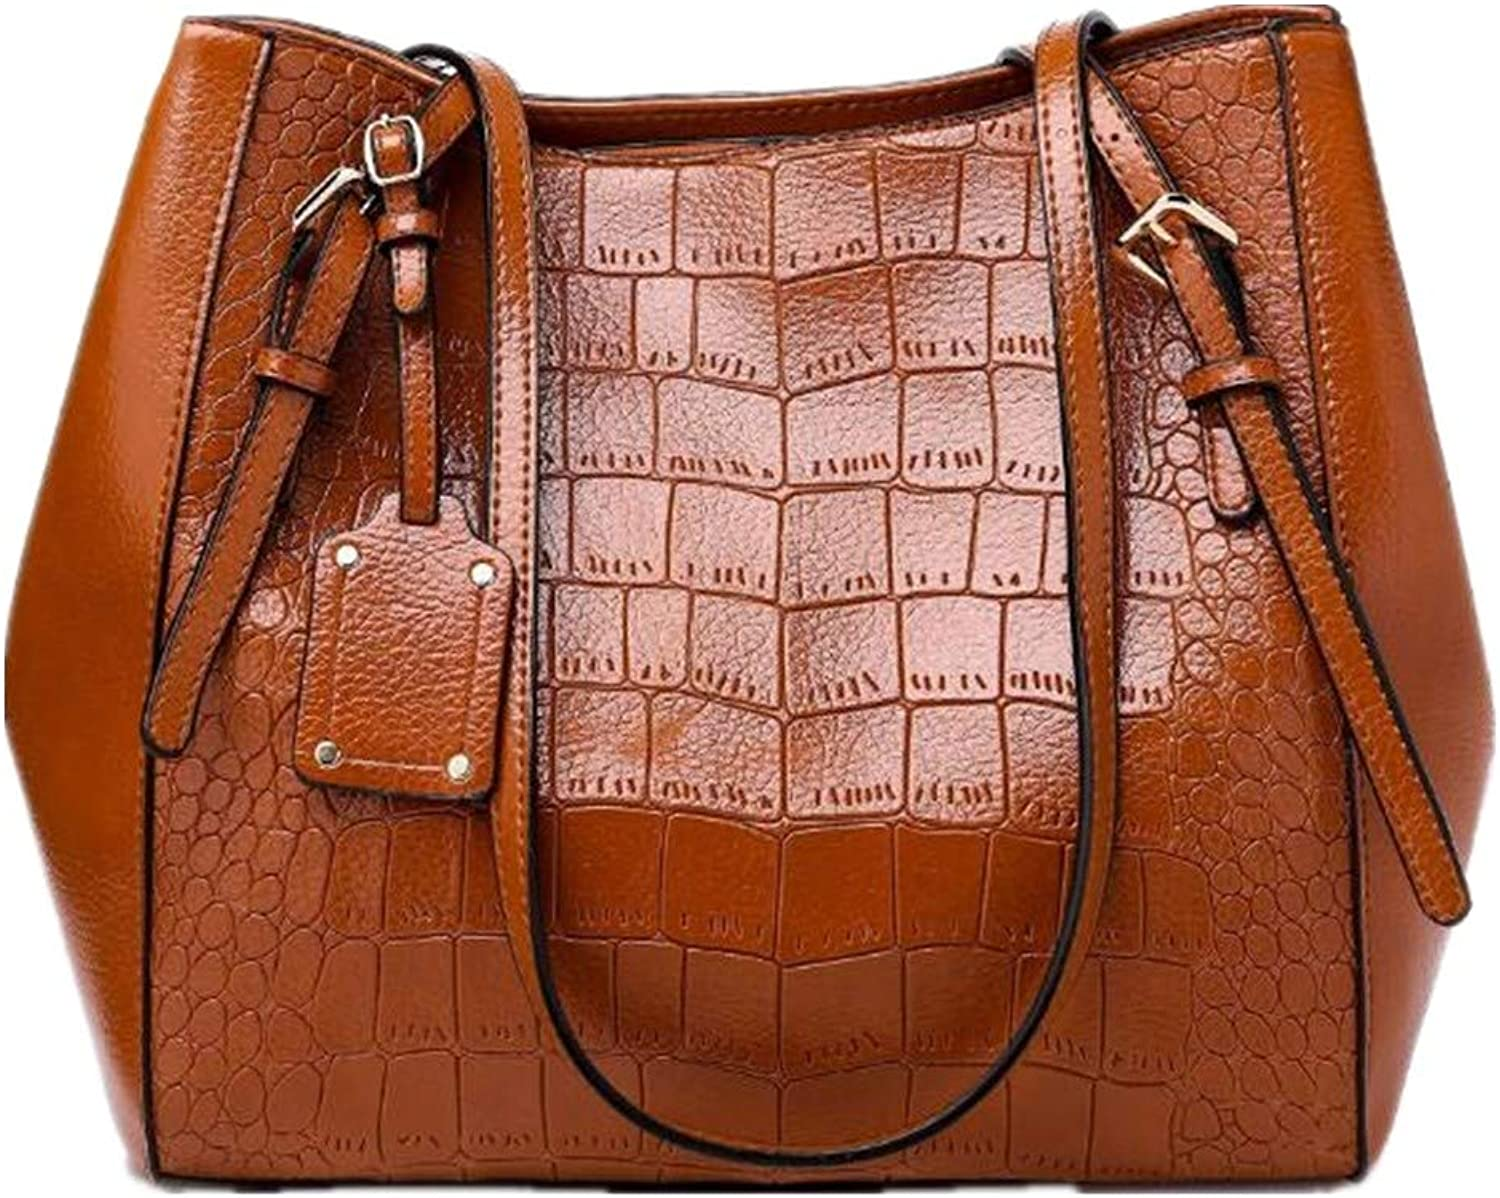 NZZNB Large Capacity Single Shoulder Bag Crocodile Pattern Handbag Fashionable Lady Bag Inclined Bag Top-Handle Handbags